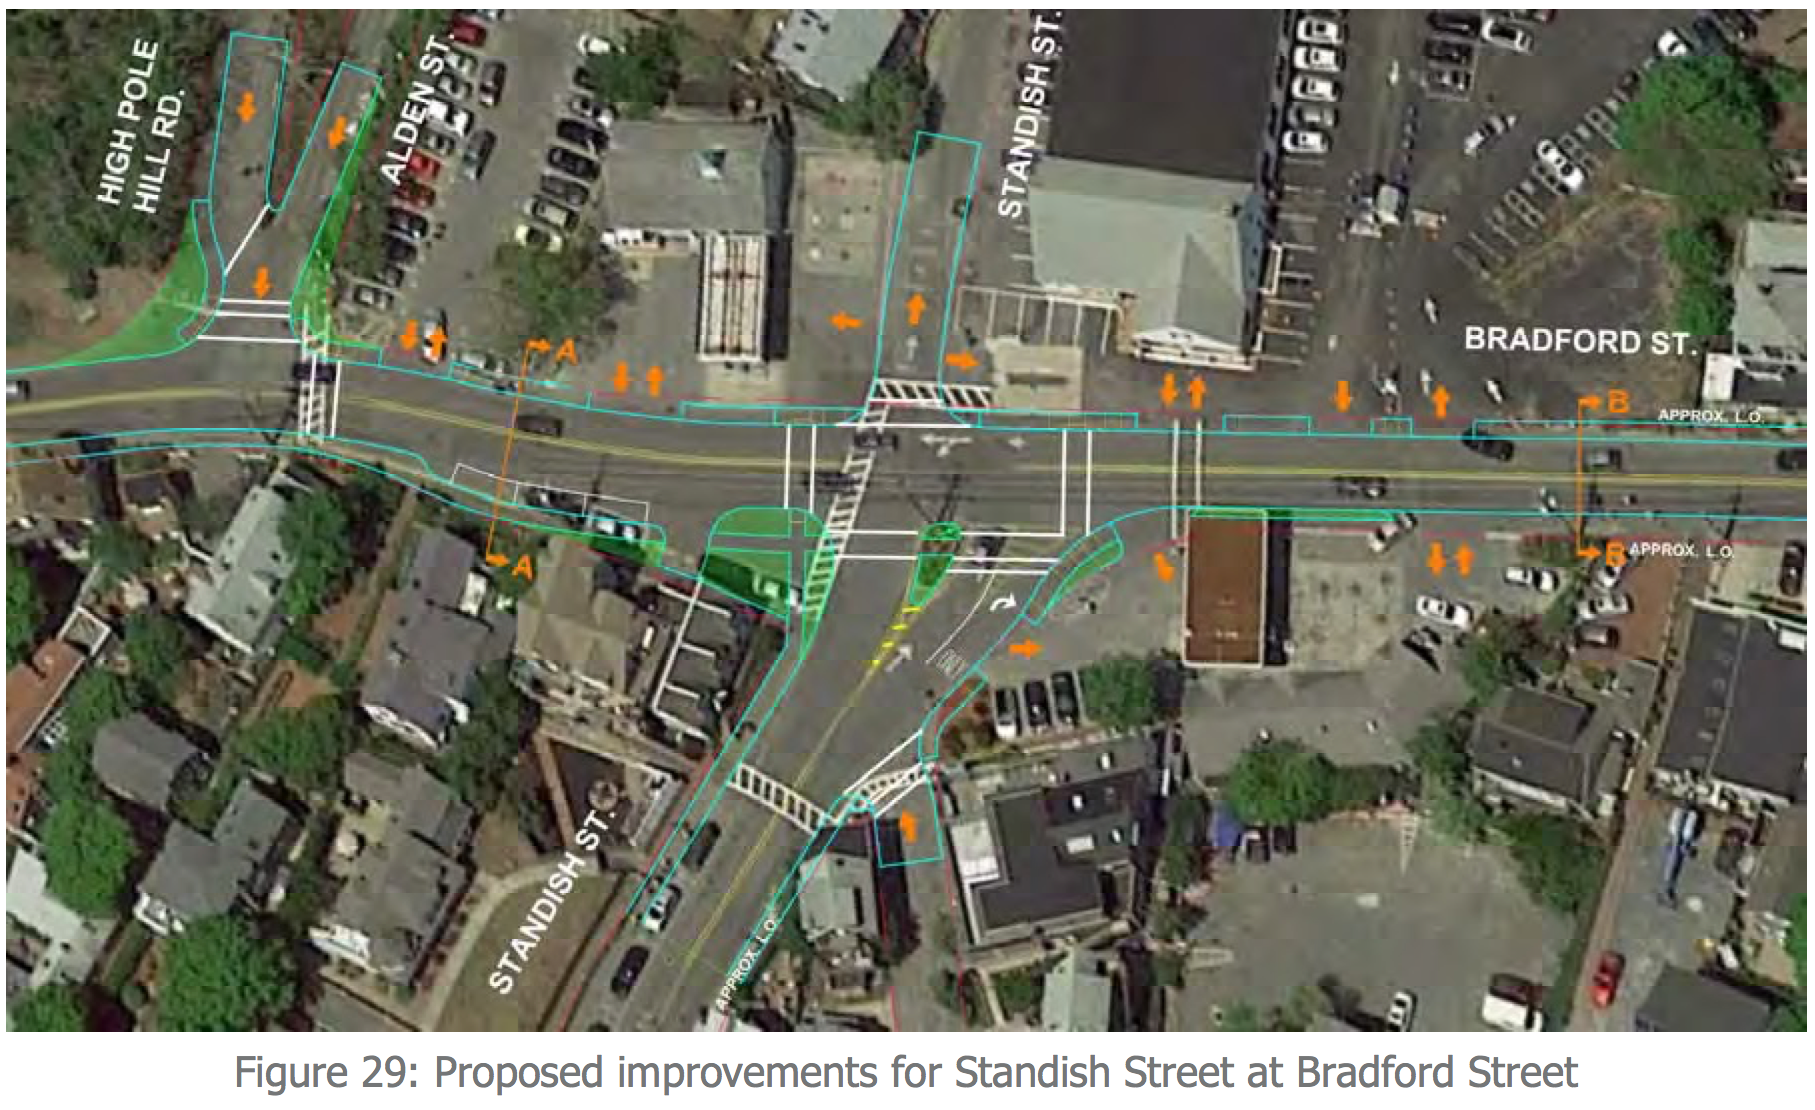 Engineering concept for improvements at the Bradford Street & Standish Street intersection.